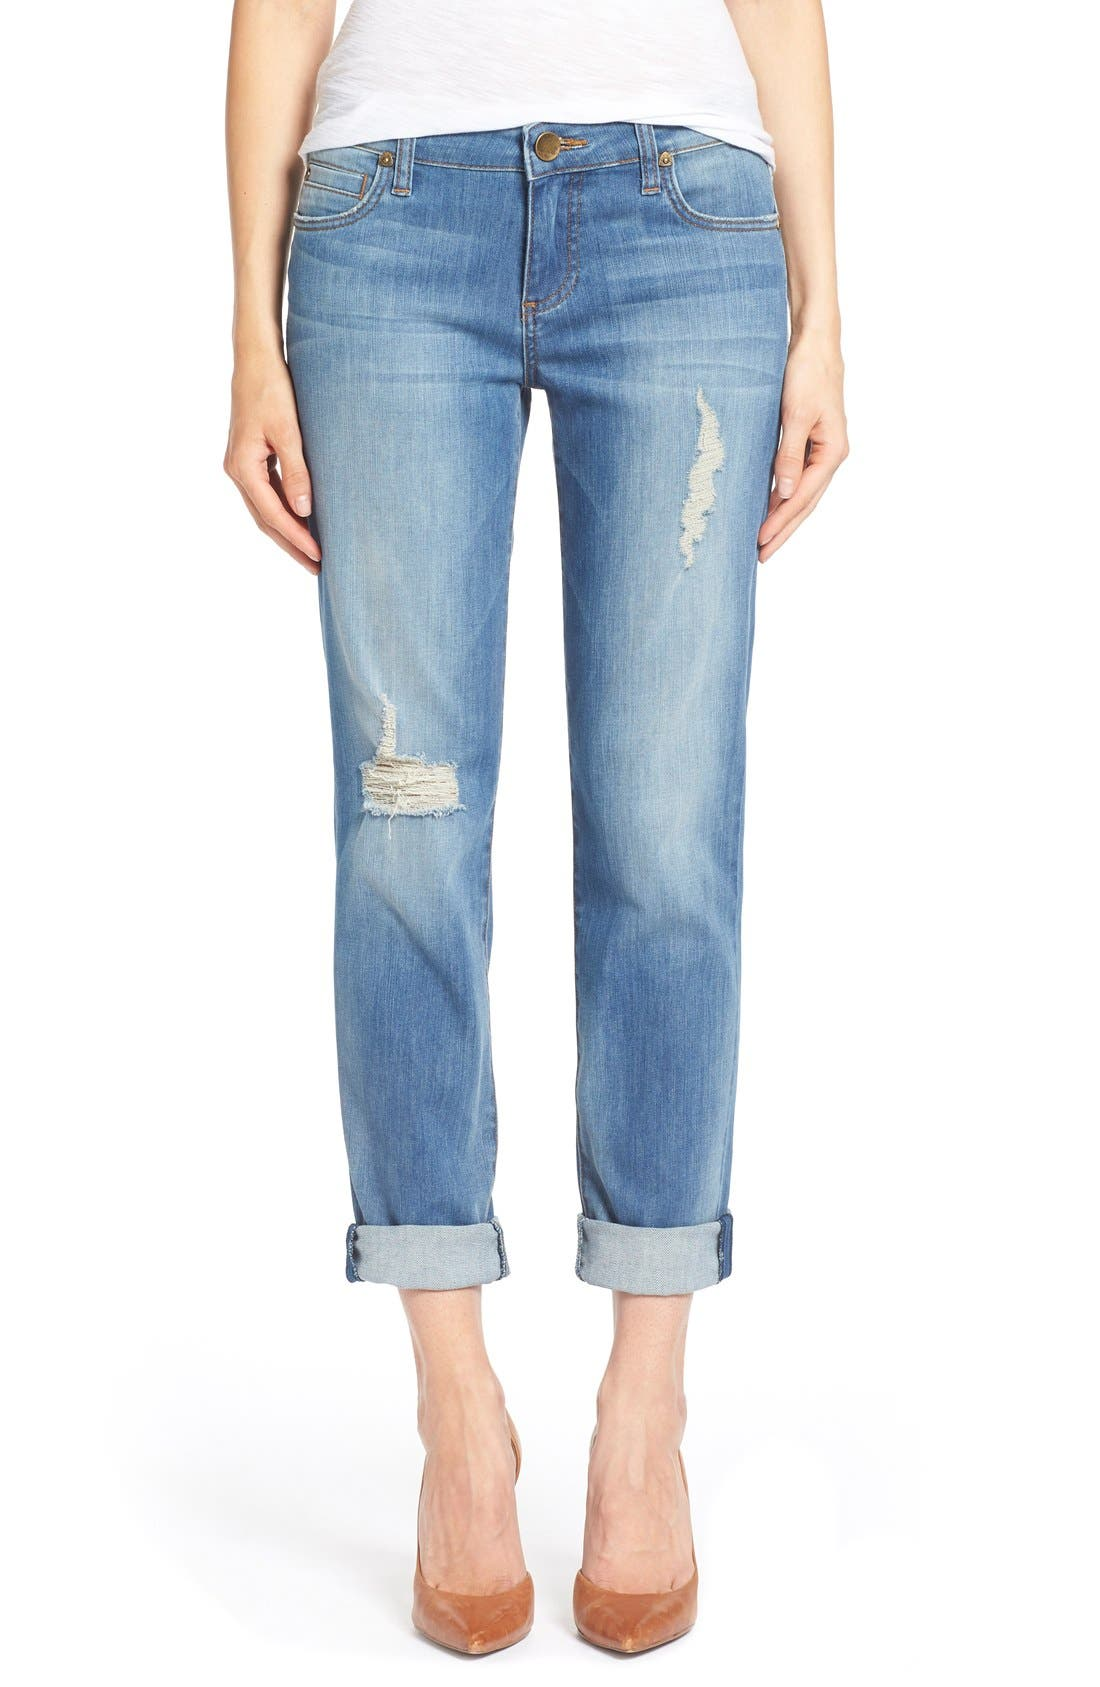 KUT FROM THE KLOTH, 'Catherine' Distressed Stretch Boyfriend Jeans, Main thumbnail 1, color, 401